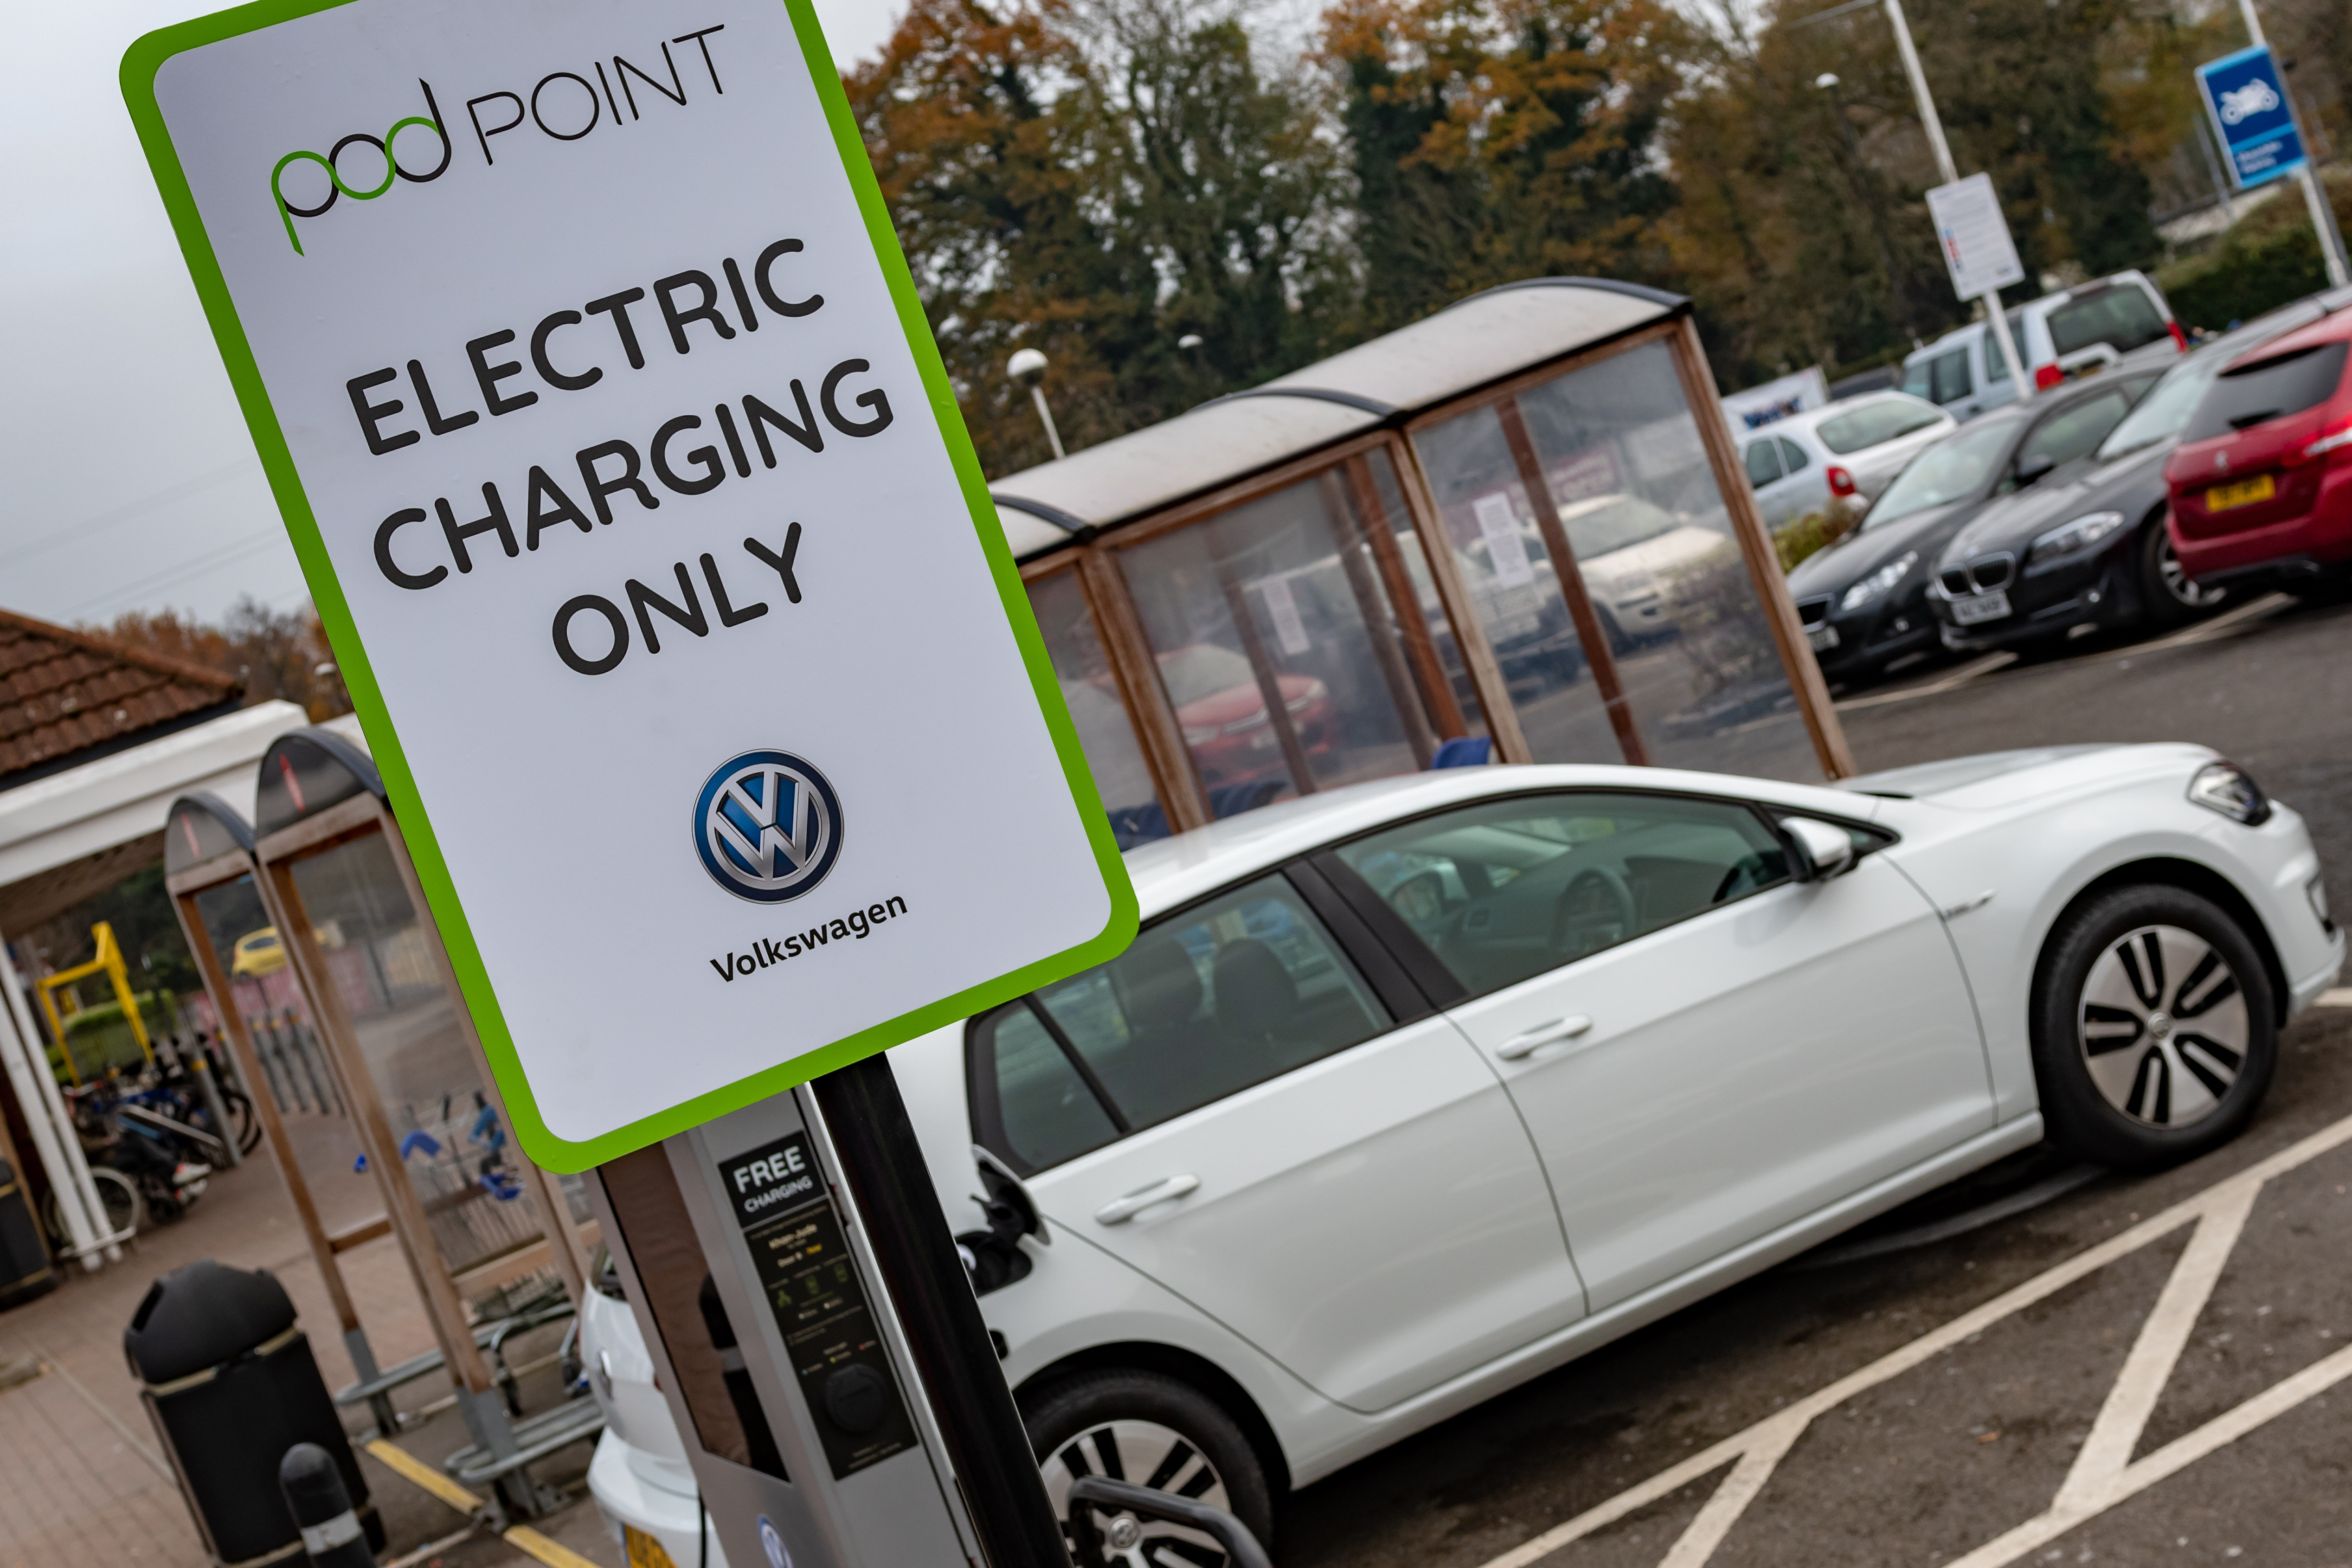 Pod Point Electric Charging Point at Tesco